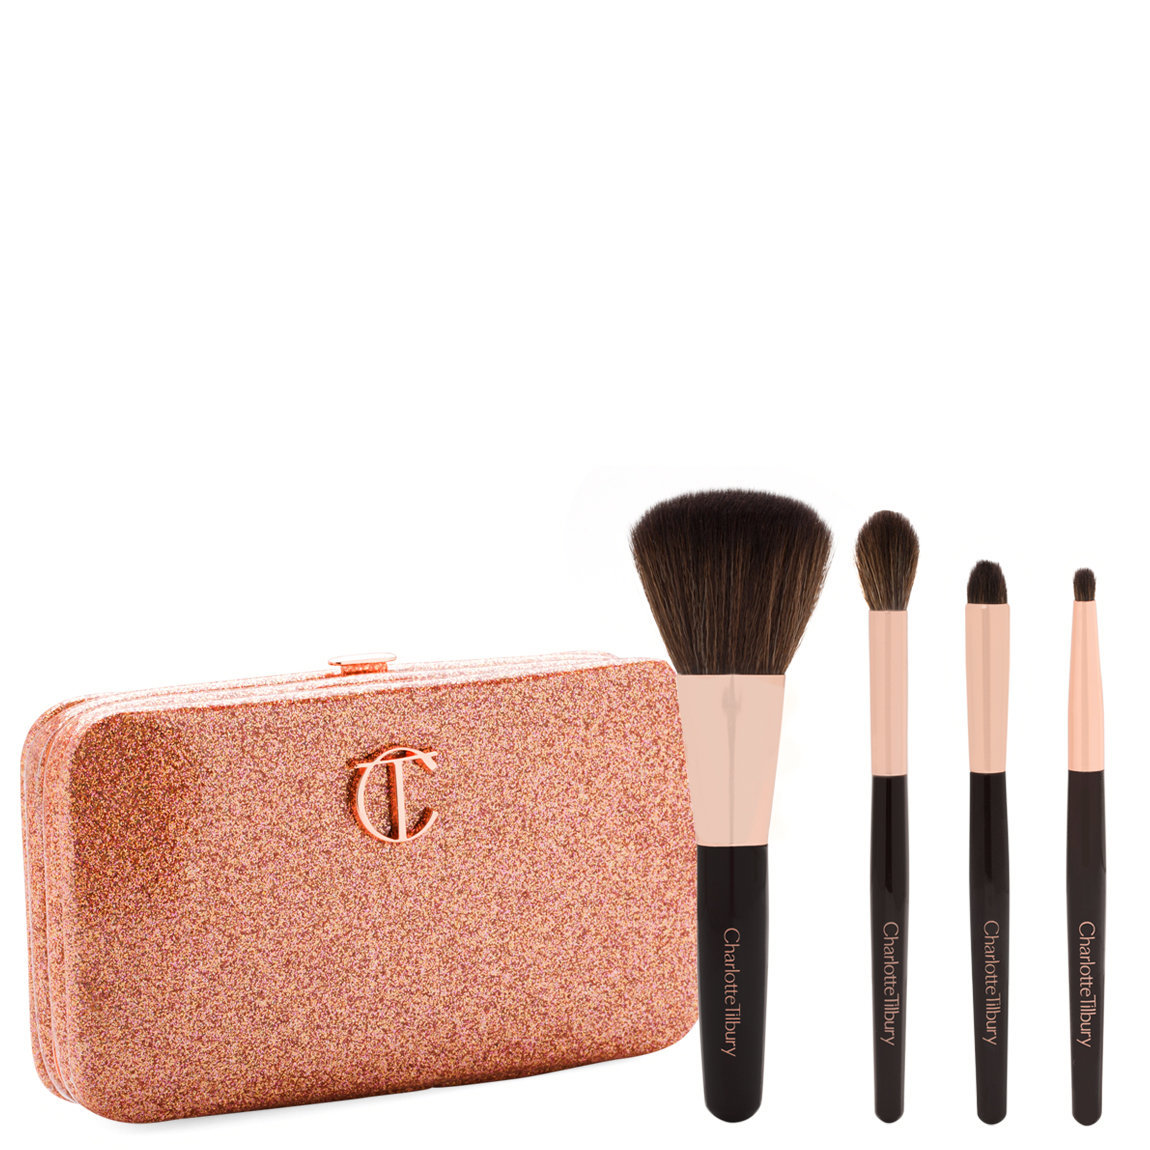 Charlotte Tilbury 2nd Edition Mini Magical Brush Set product smear.